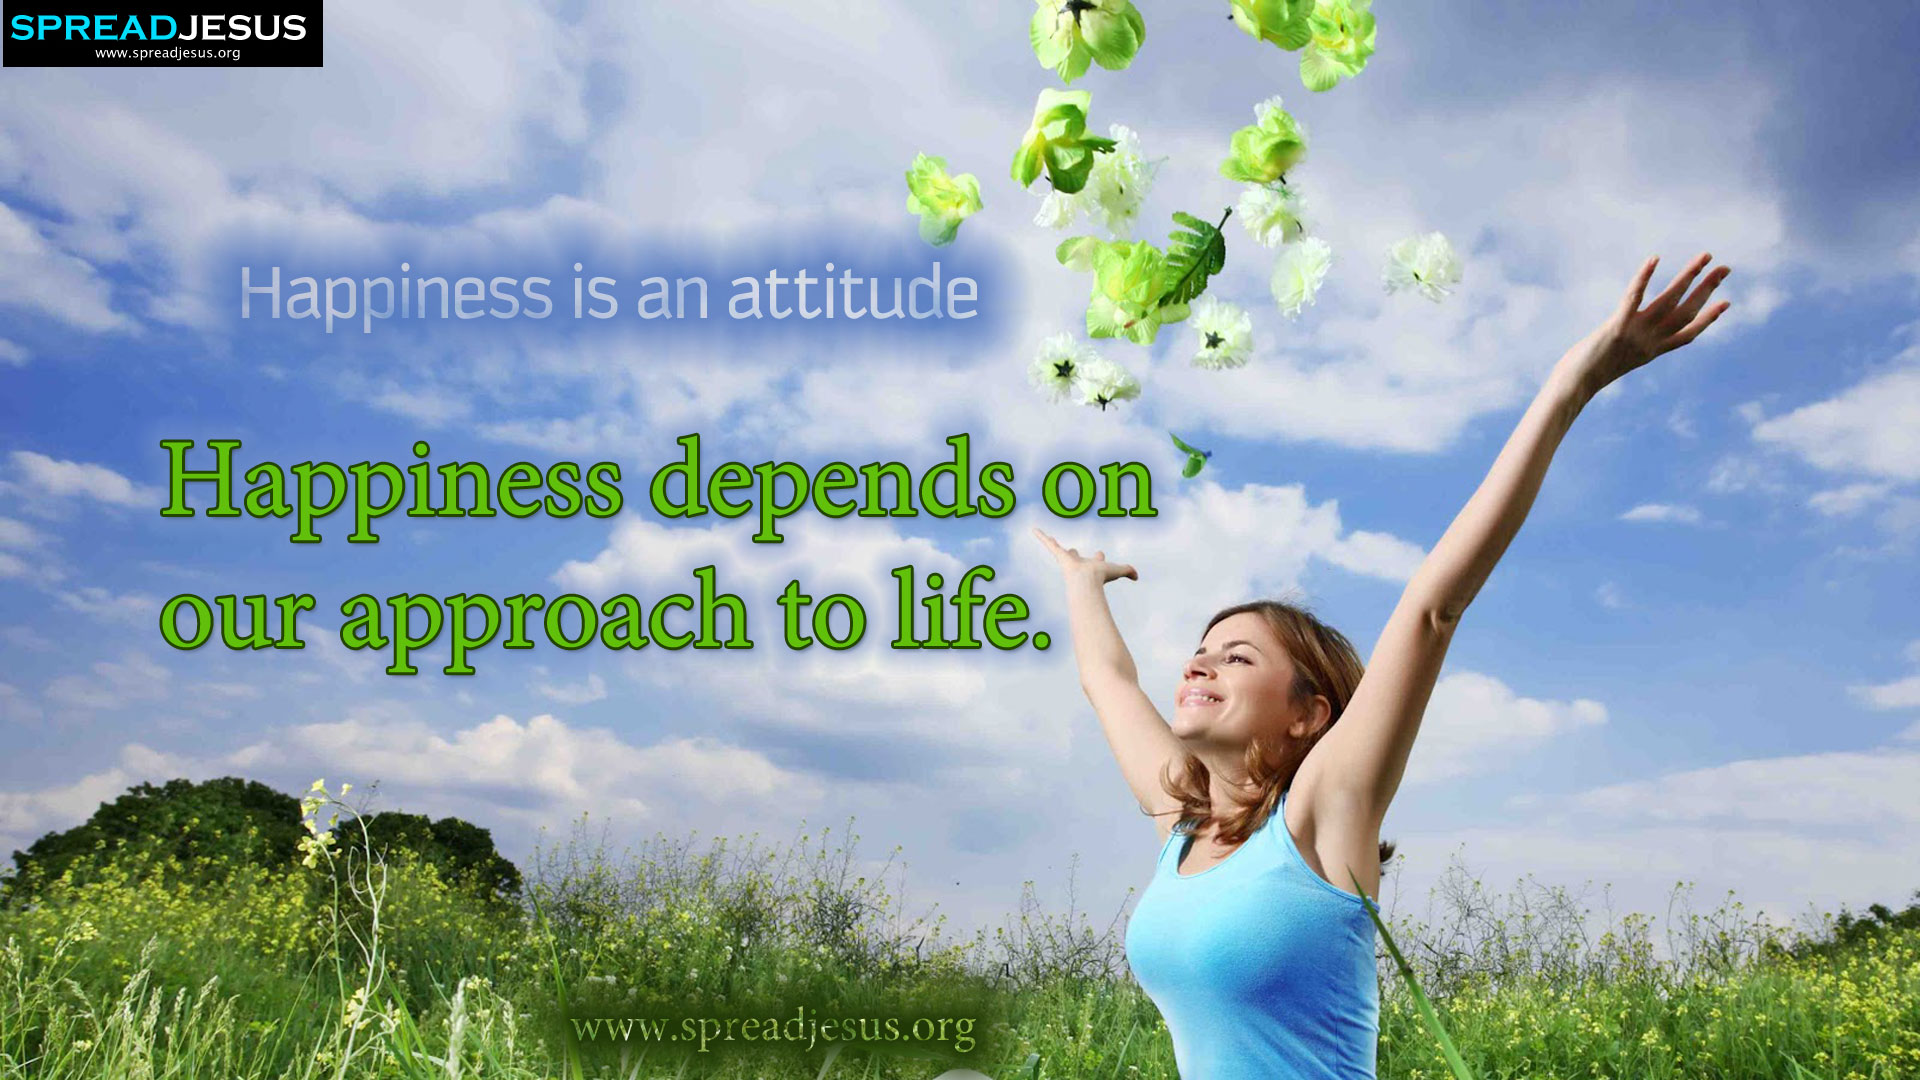 Attitude Love Girl Wallpaper : Happiness quotes : Happiness Hd wallpapers : Happiness Fb covers